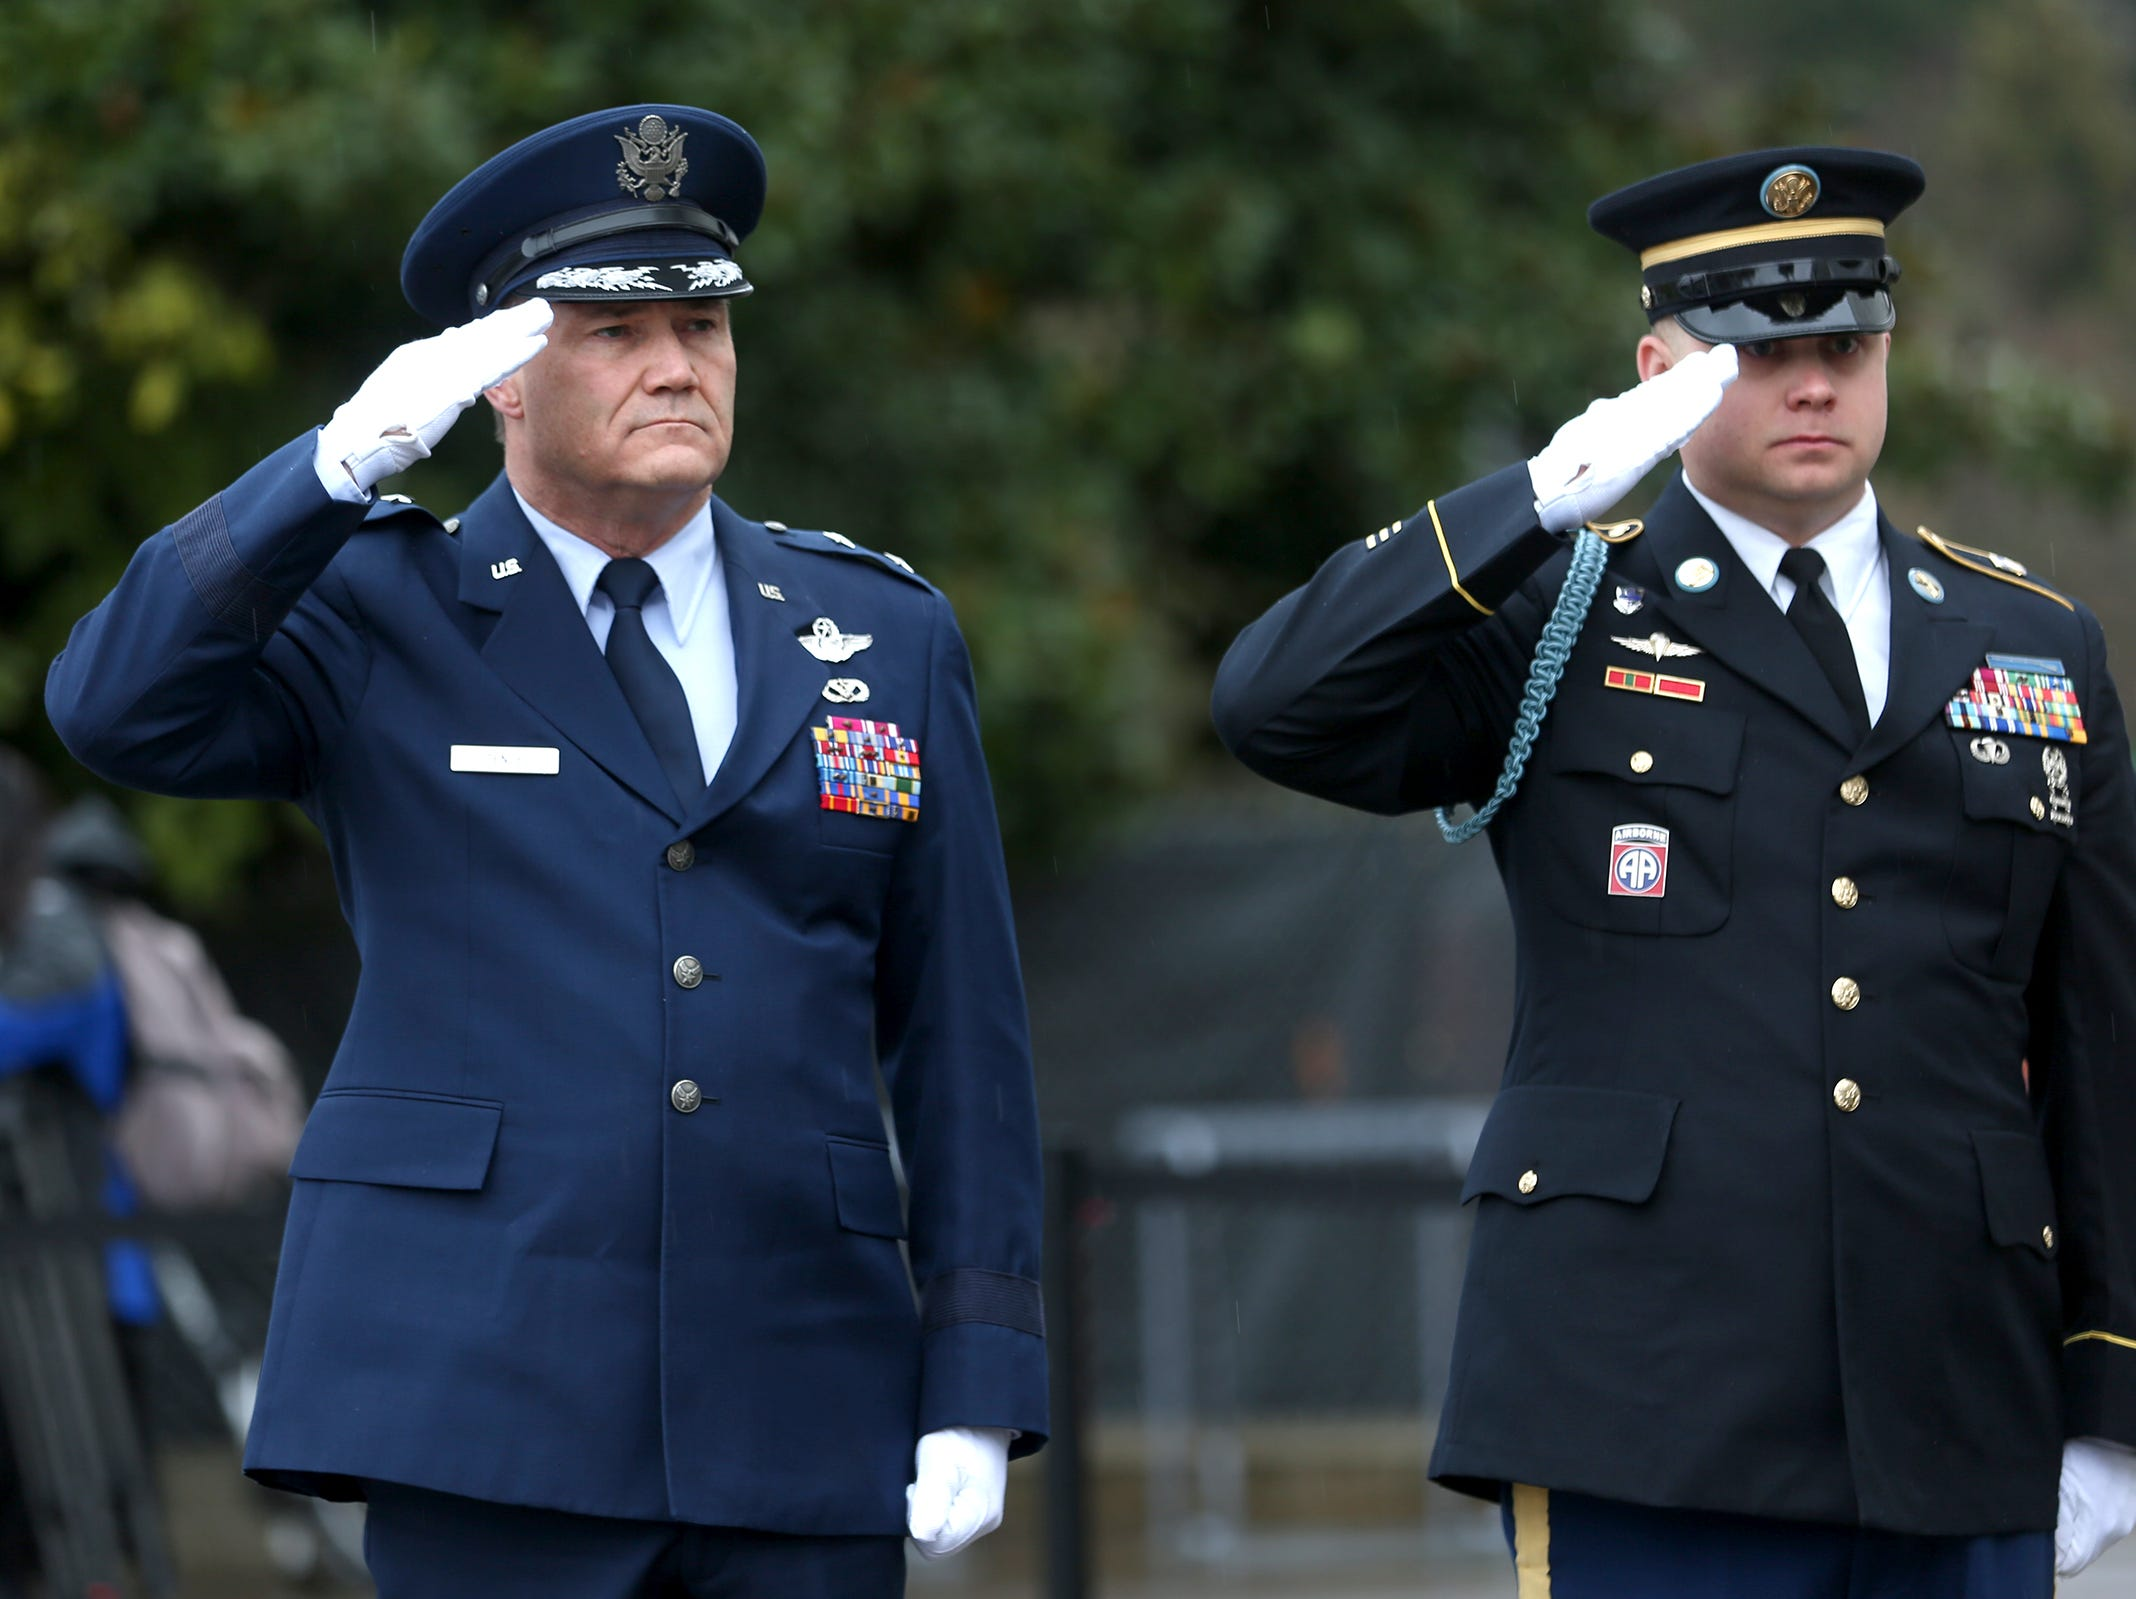 Maj. Gen. Michael E. Stencel, adjutant general of the Oregon National Guard, salutes during the state funeral for Secretary of State Dennis Richardson at the Oregon State Capitol in Salem on Wednesday, March 6, 2019.